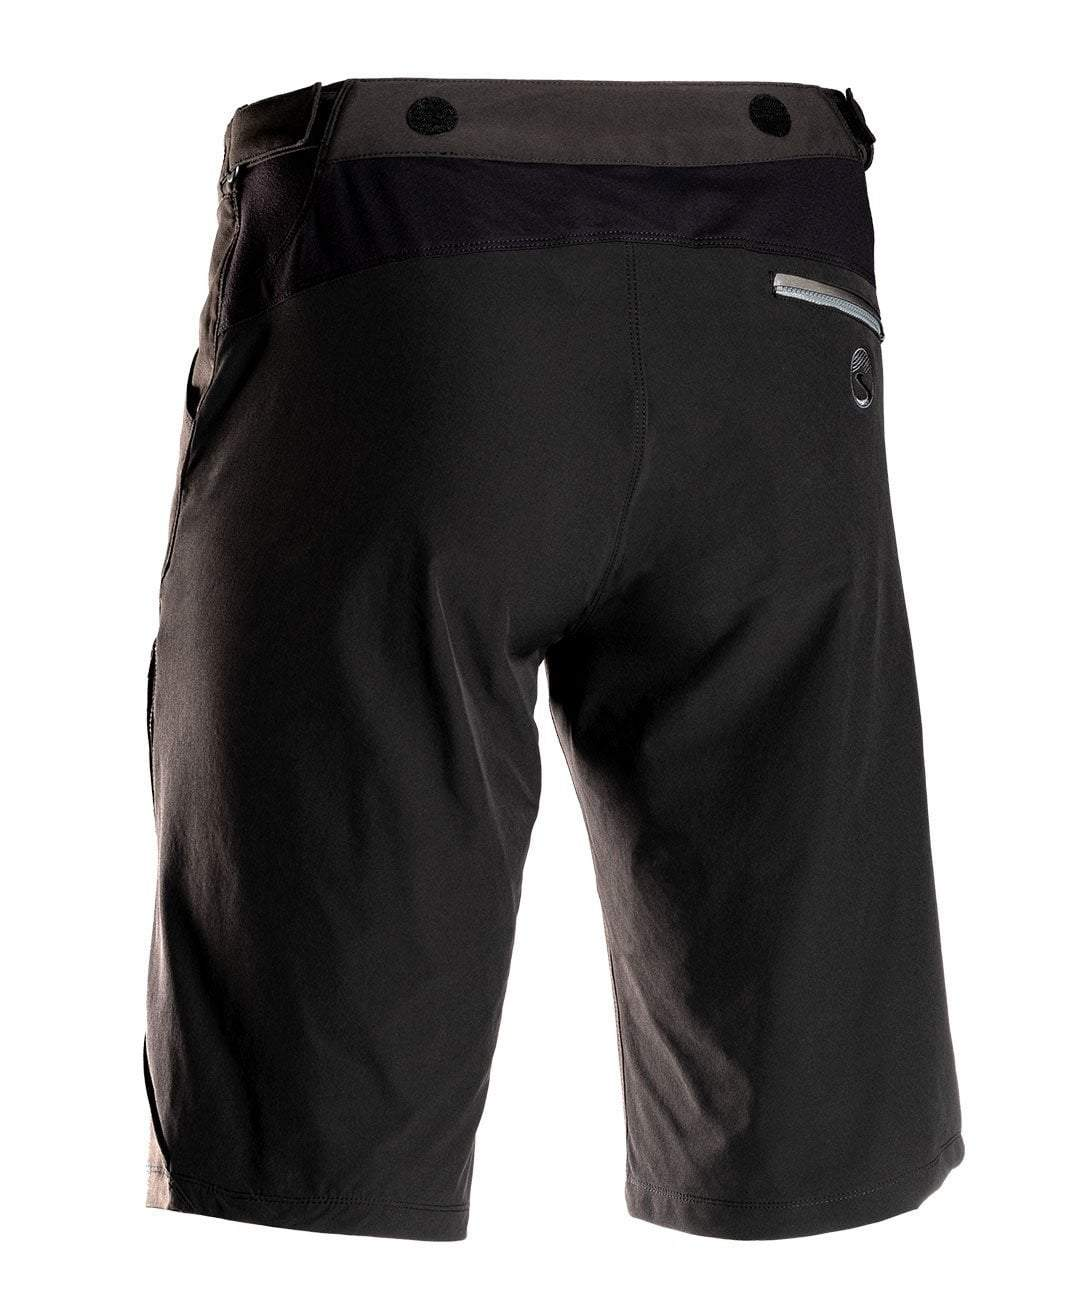 "Men's IMBA DWR 12"" Shorts"